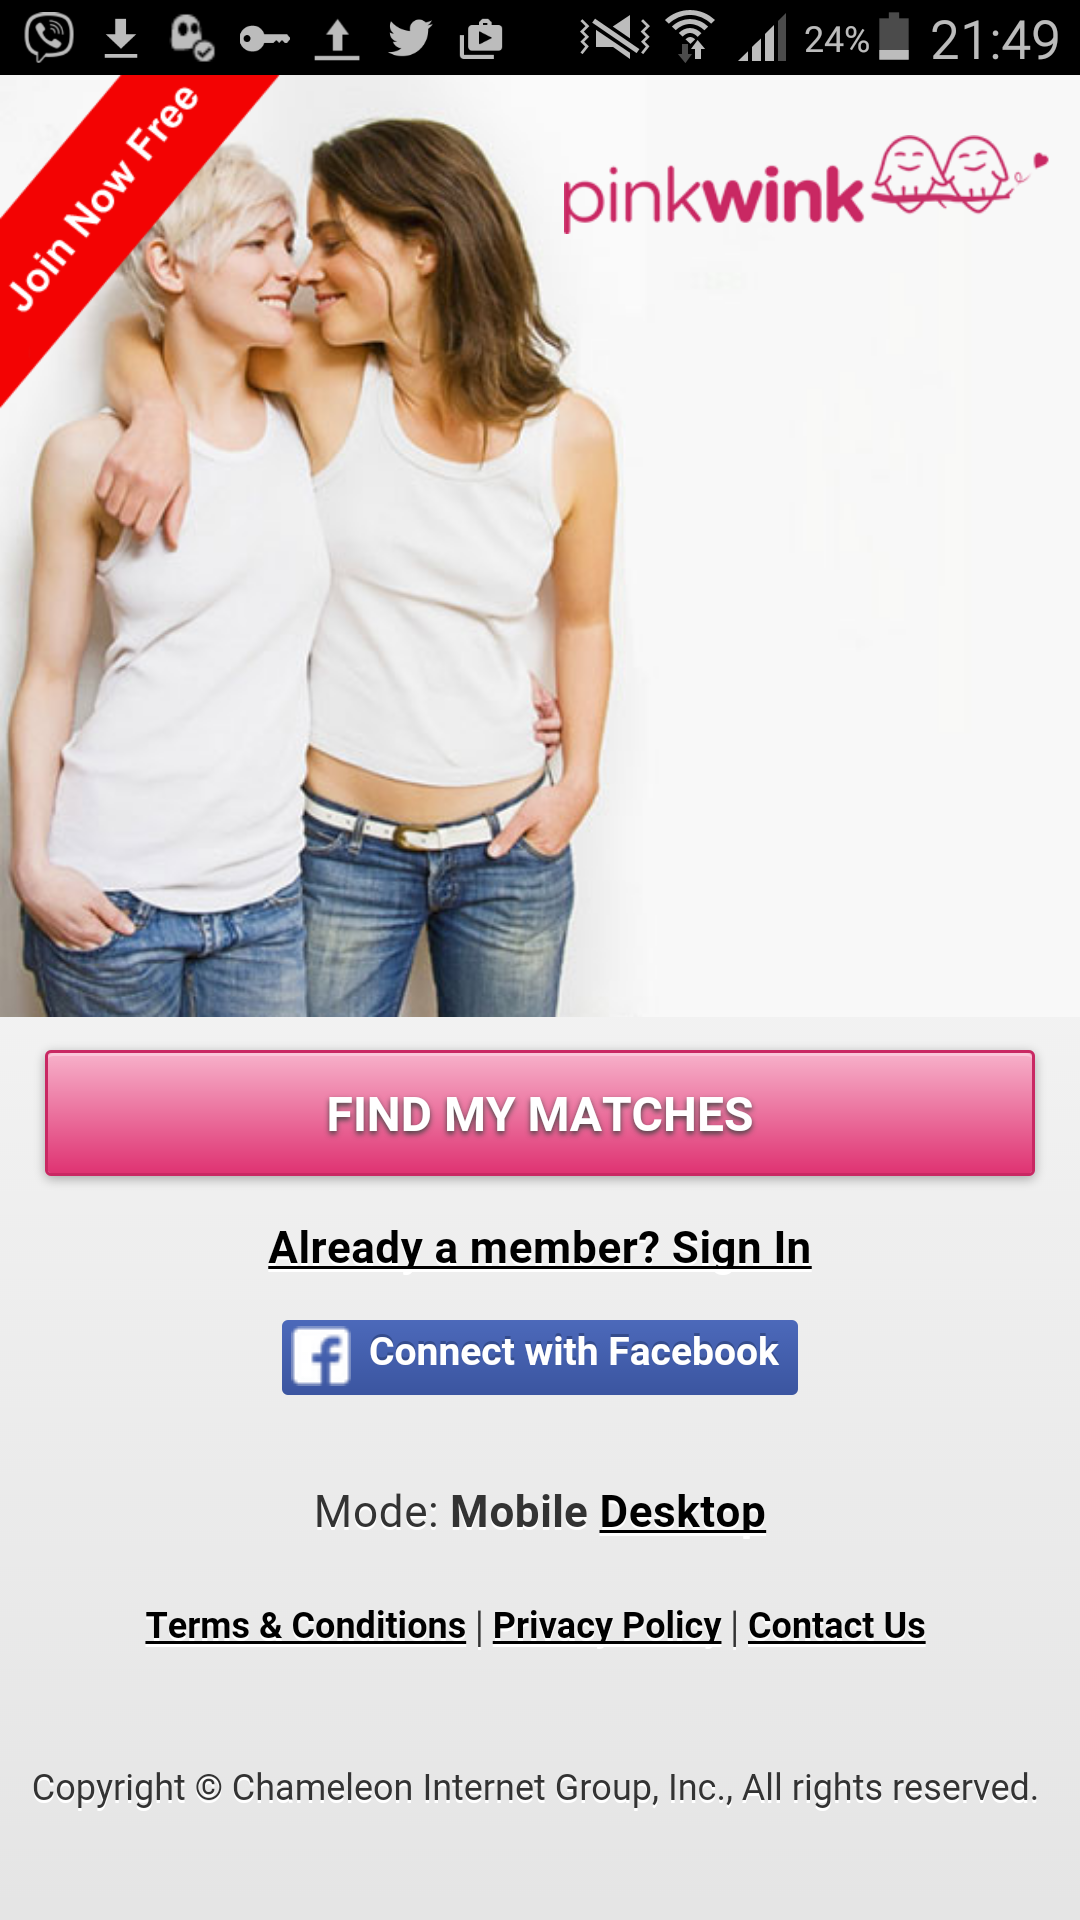 savonburg lesbian dating site Dating apps are rarely built with lesbian, bisexual, and queer women in mind, but  they can still work if you know how to use them right.